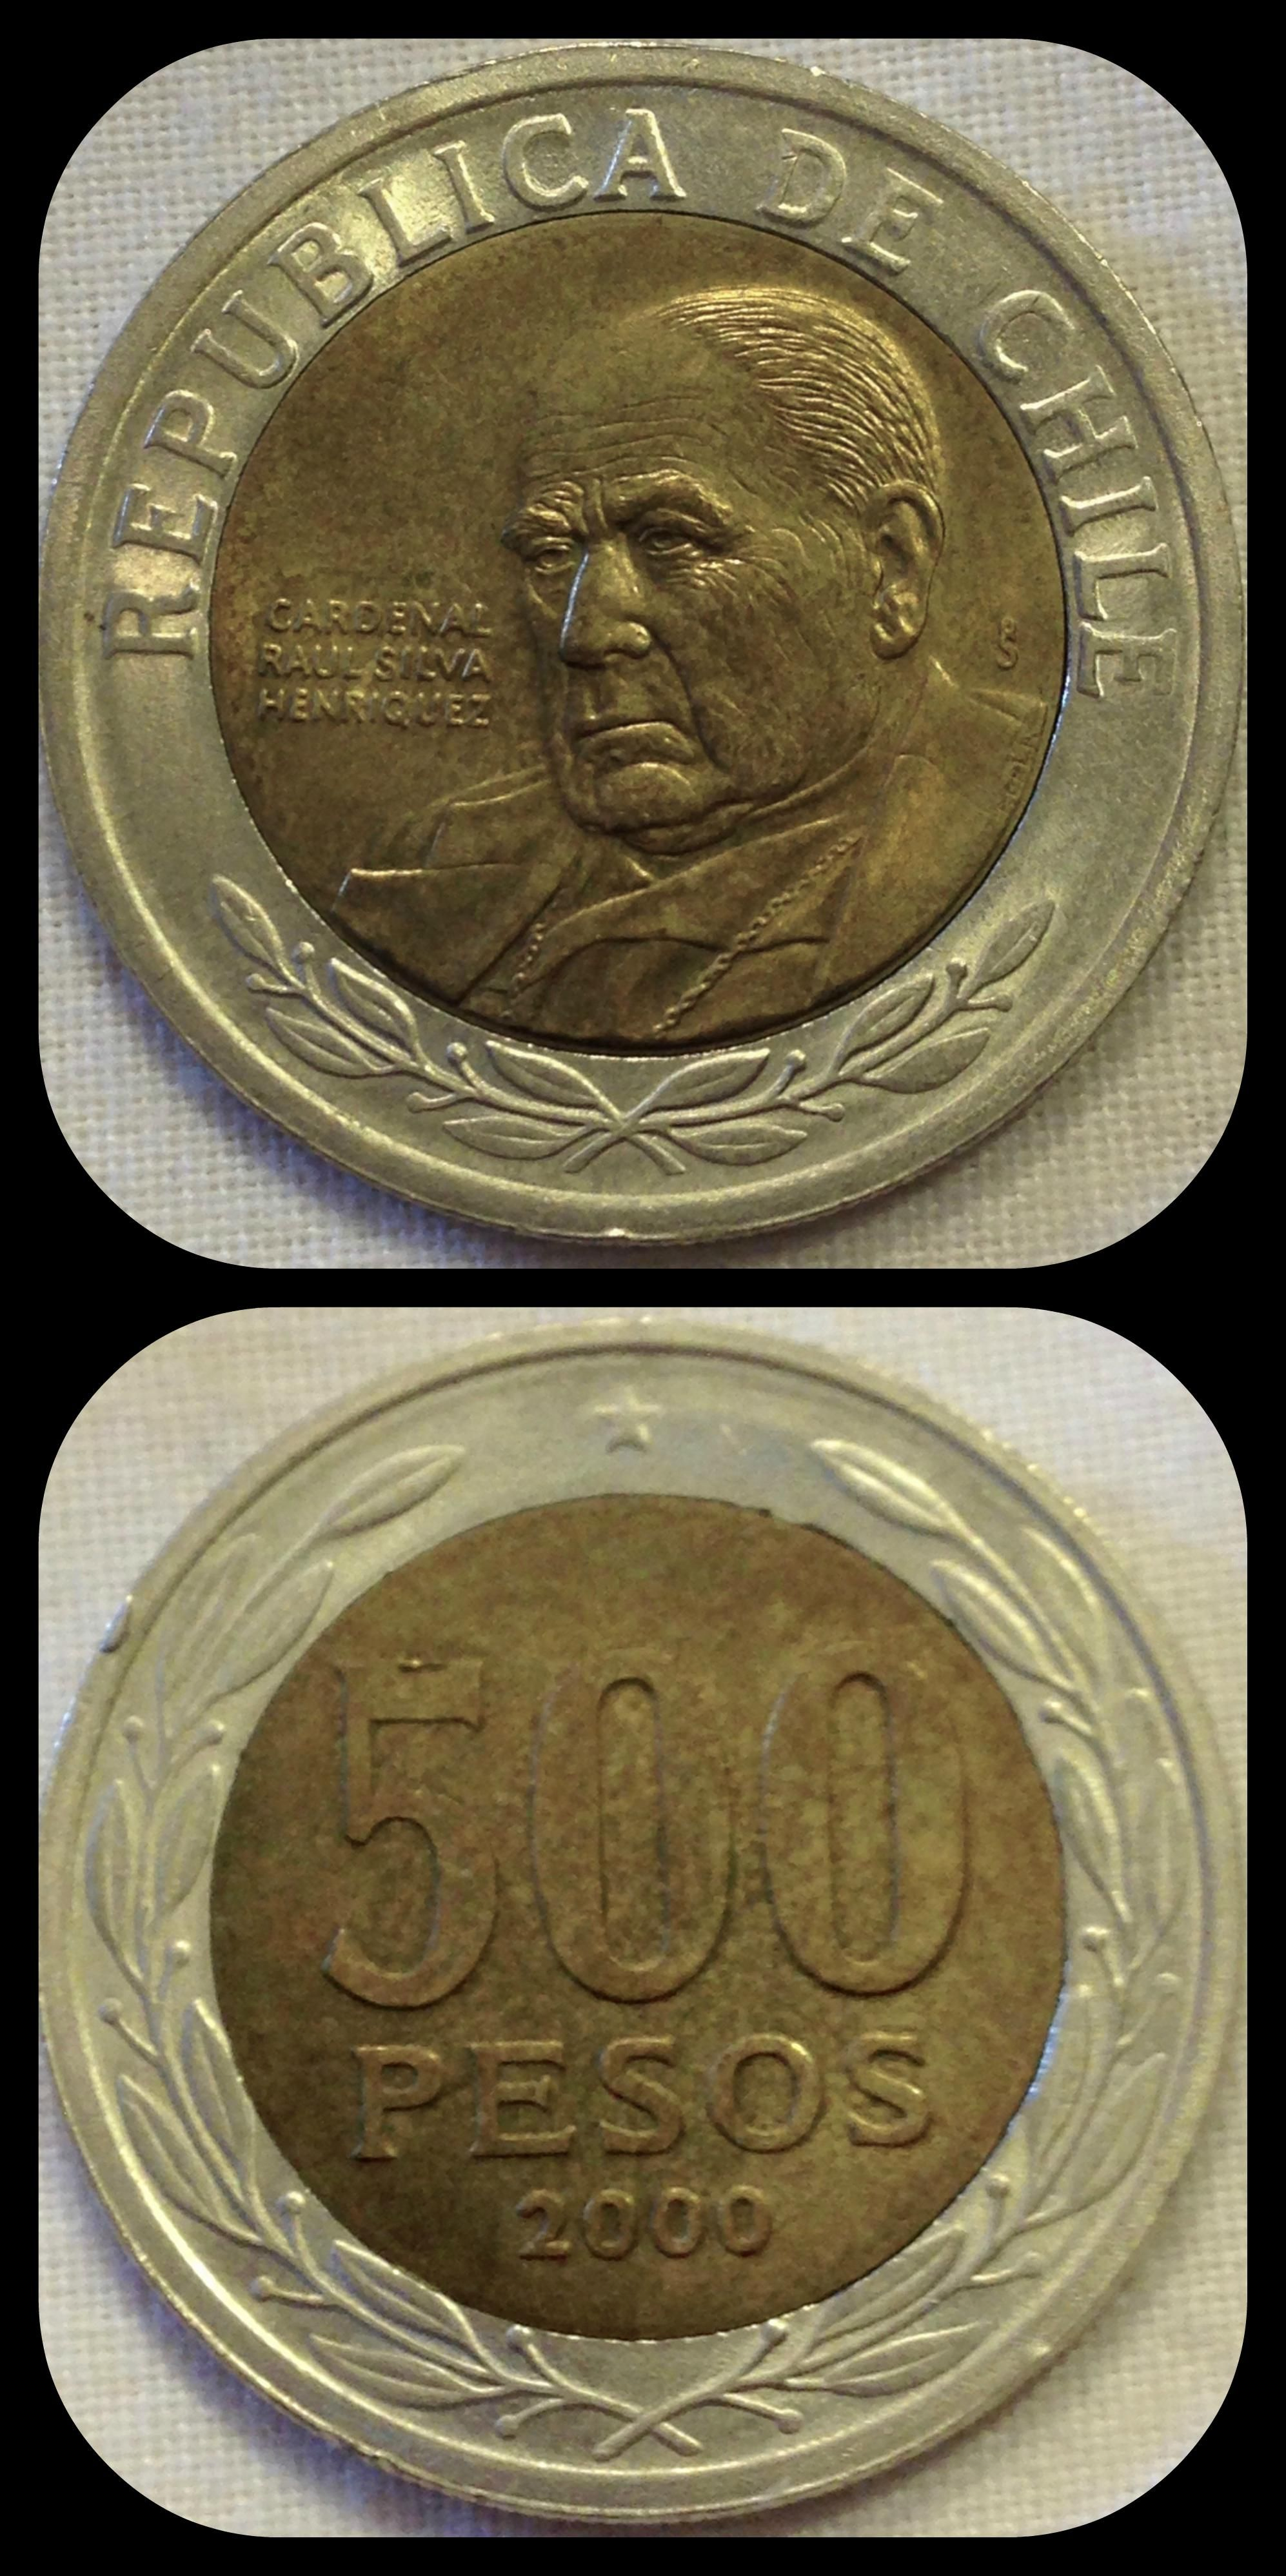 Chile 500 Pesos 2000 Condition Xf These Coins Feature The Bi Of Santiago Cardenal Raul Silva Henriquez If You Have One From And It